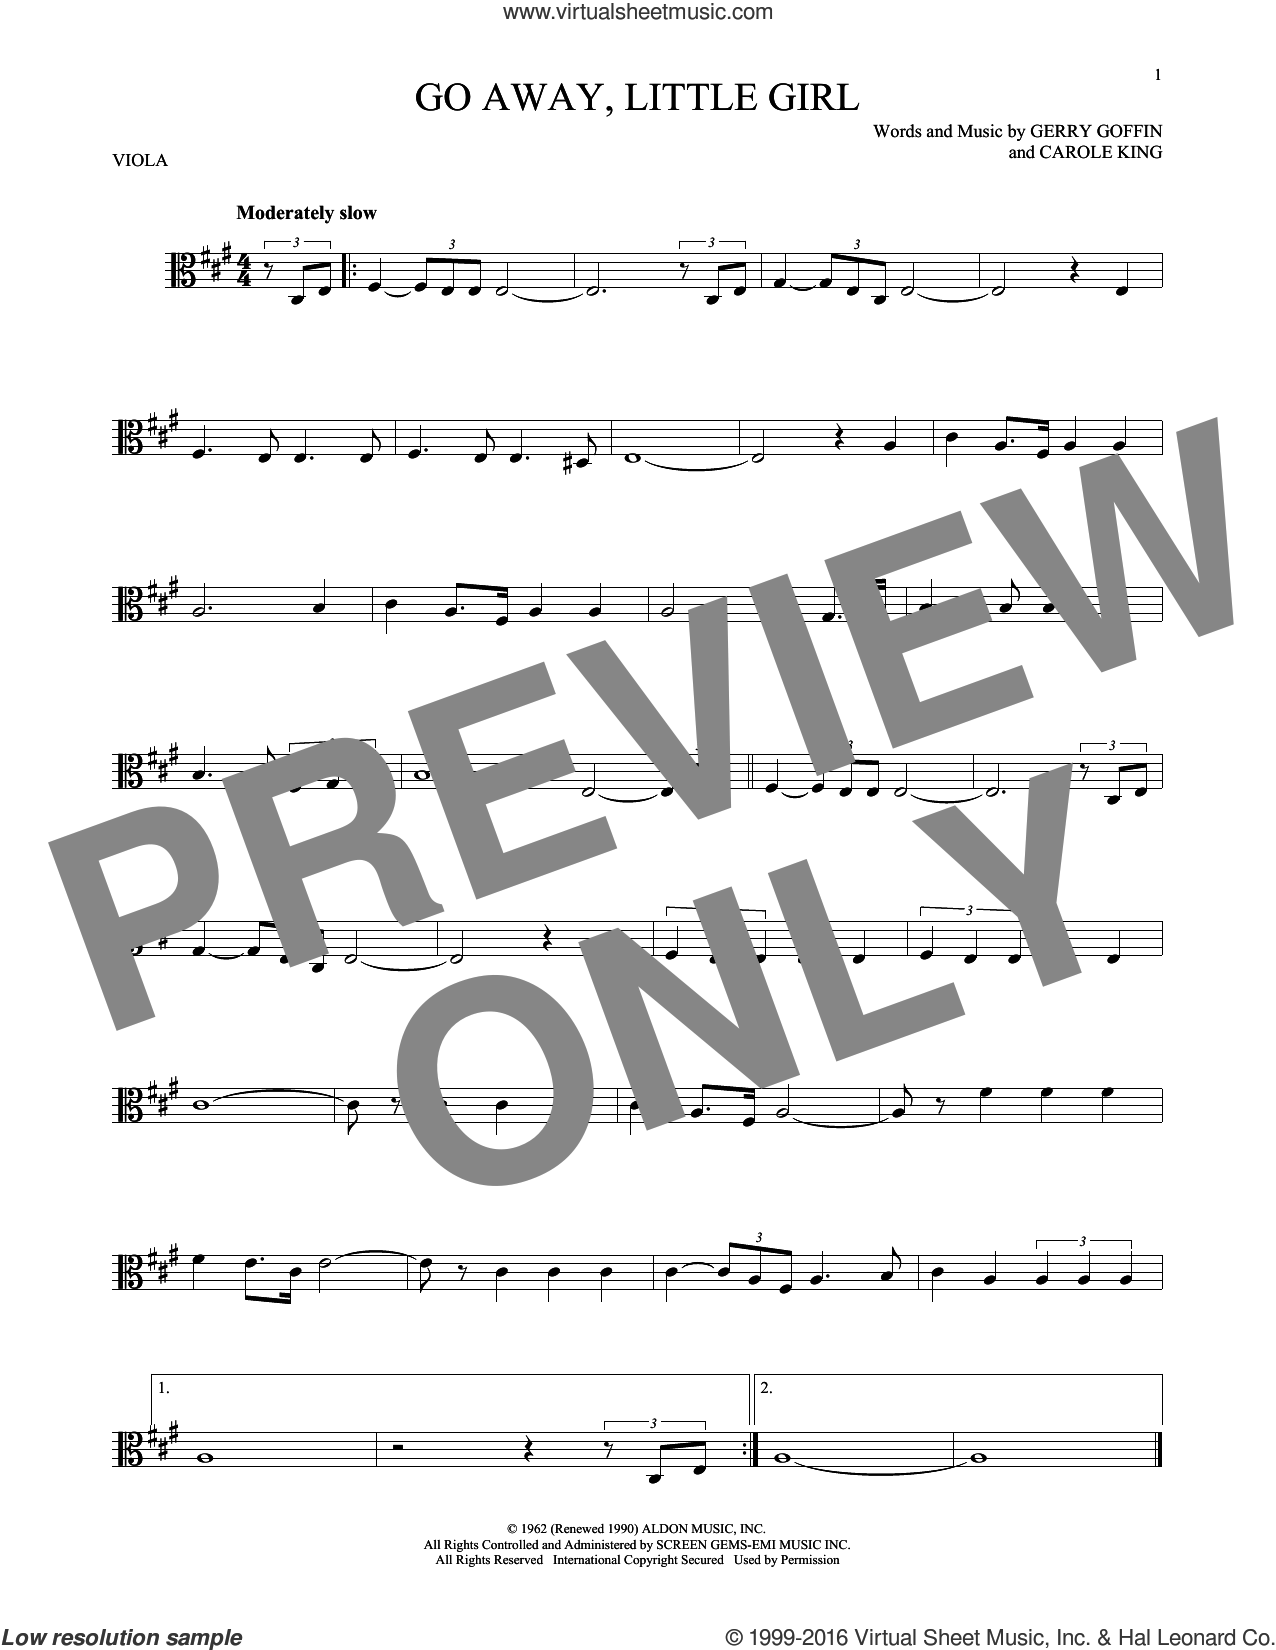 Go Away, Little Girl sheet music for viola solo by Donny Osmond, Steve Lawrence, Carole King and Gerry Goffin, intermediate viola. Score Image Preview.